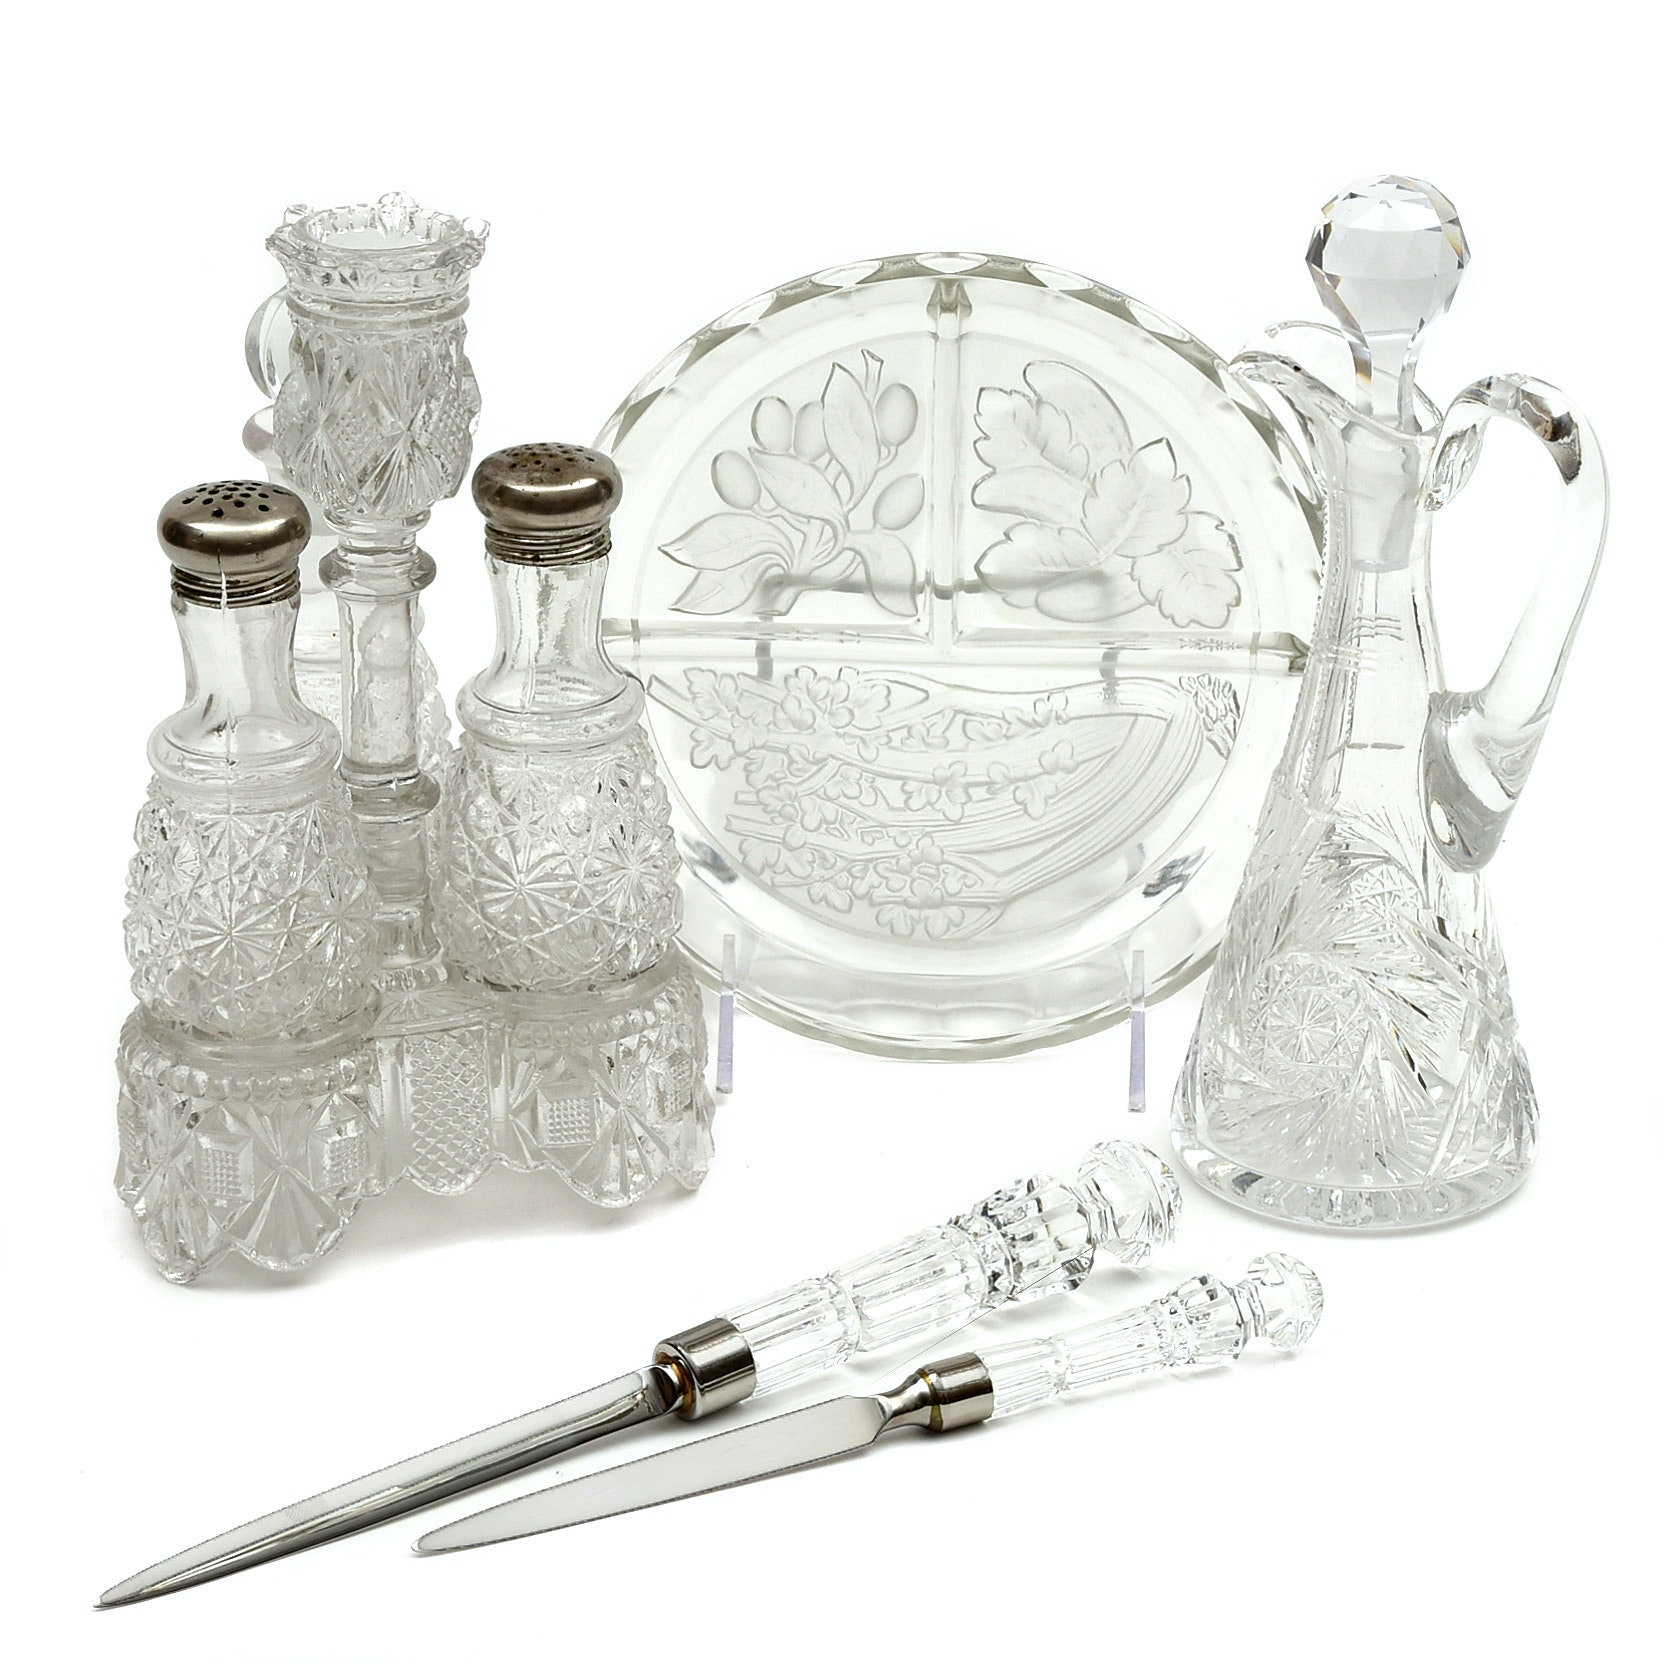 Waterford Crystal Letter Openers, Vintage Pressed Glass Caddy and Serveware